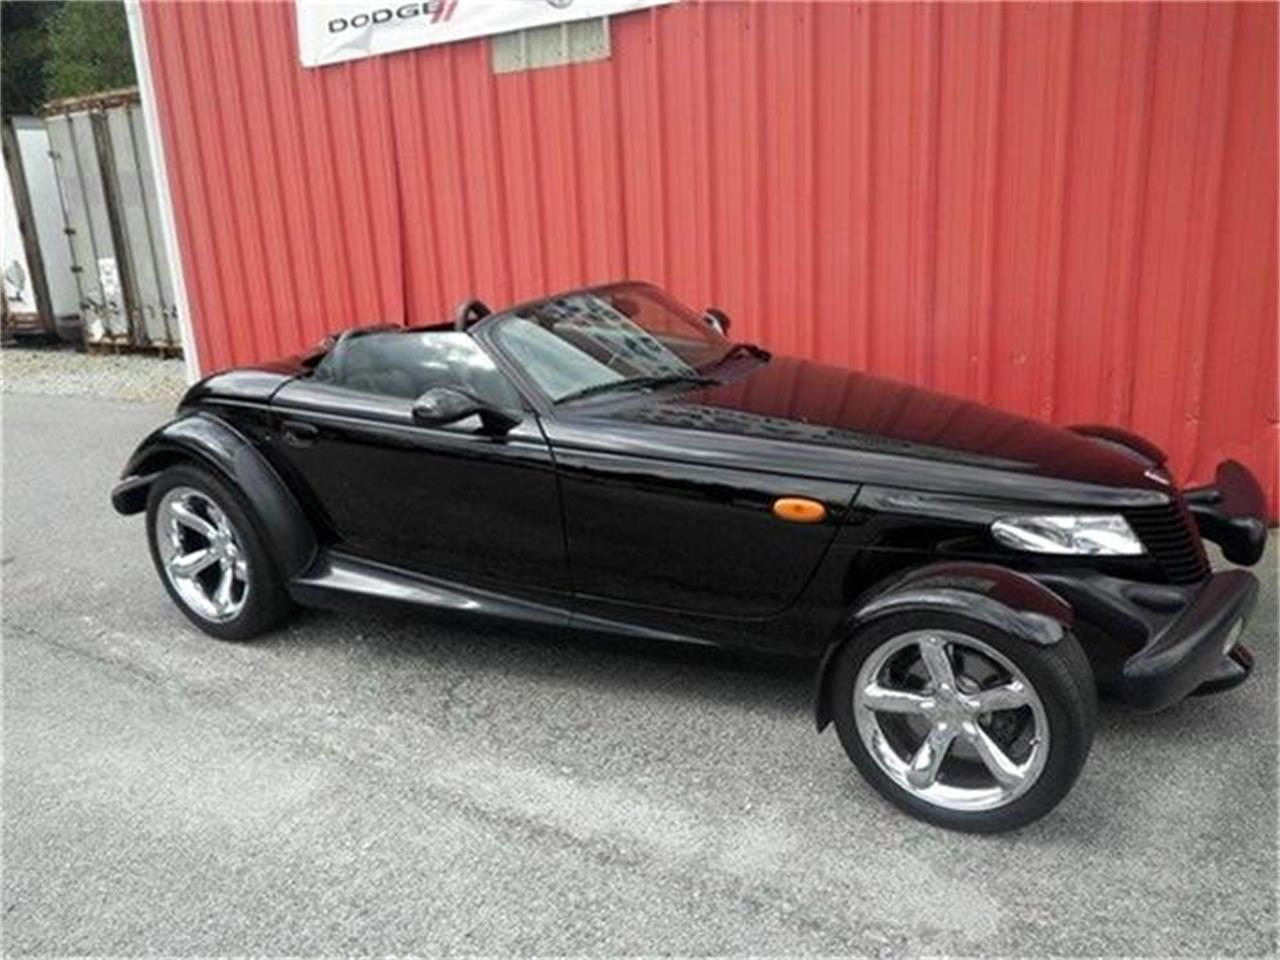 Large Picture of '00 Plymouth Prowler located in Florida Offered by Bob's Classics, Inc. - CZF4